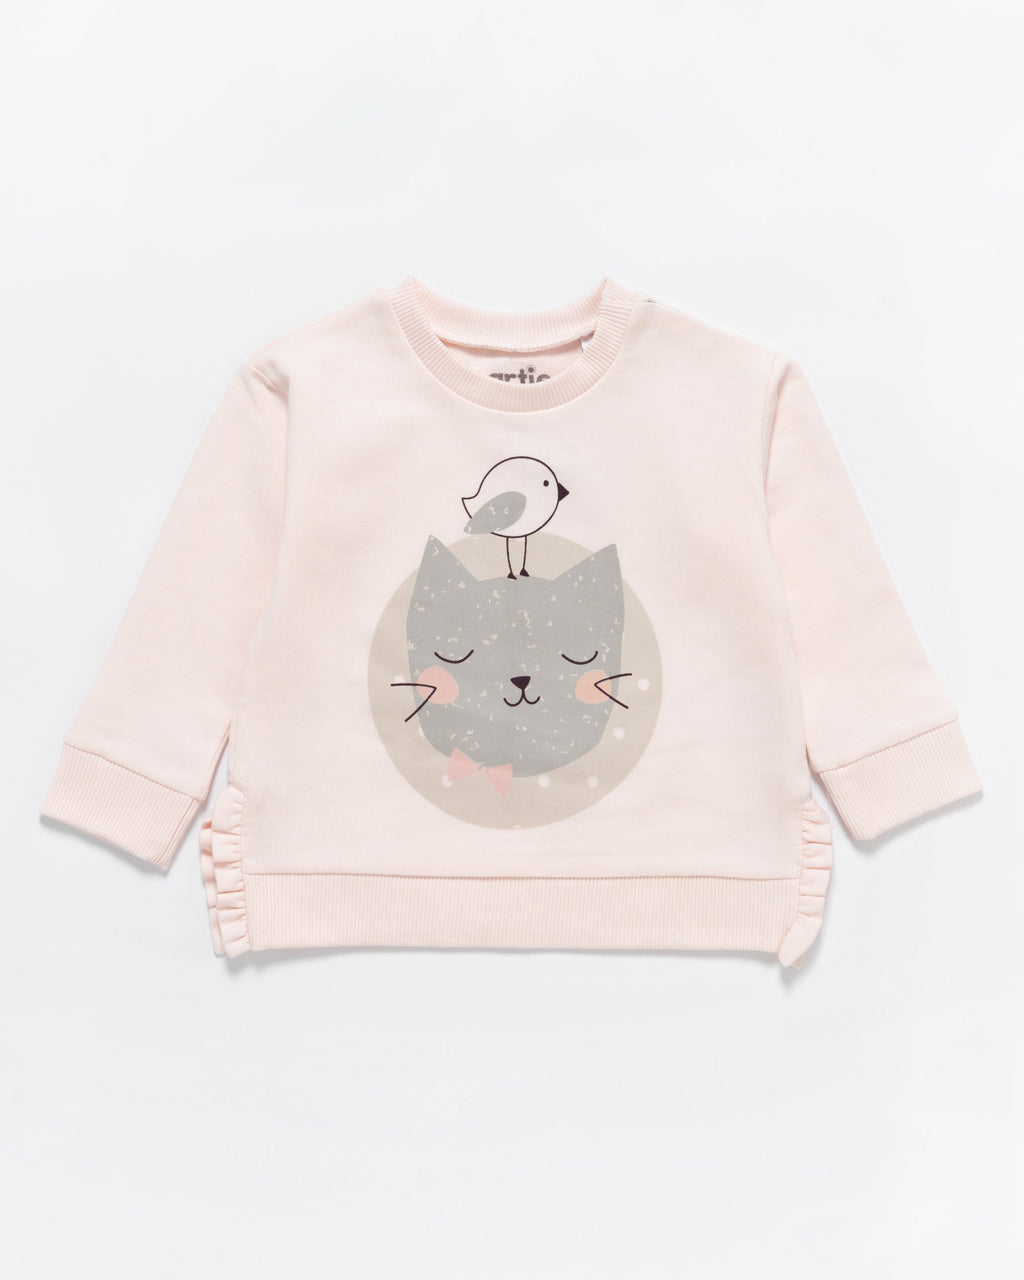 Artie - Kitty Cat Pink Frill Sweatshirt - Stylemykid.com